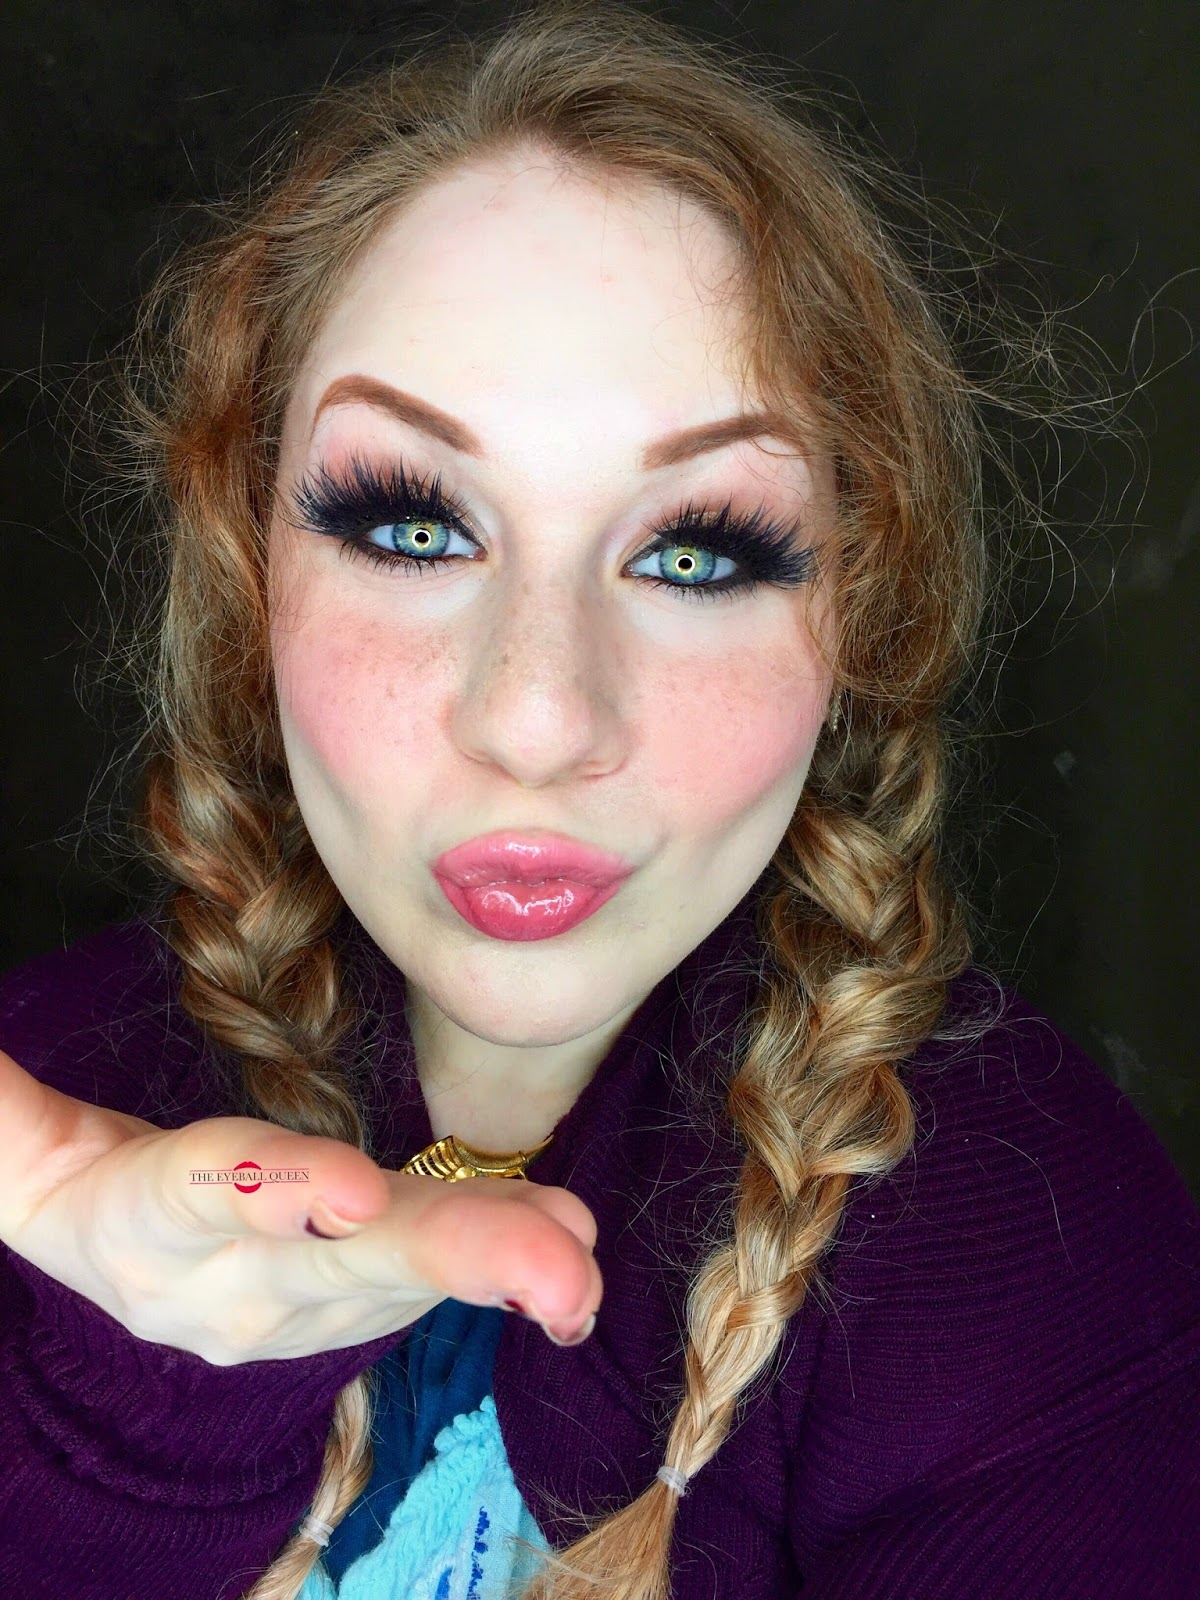 Frozen princess anna halloween makeup tutorial cosplay inspired taking a zoomed in view at annas facial features and at whatever makeup she might be wearing easily anyone of any skill level could replicate her look baditri Image collections